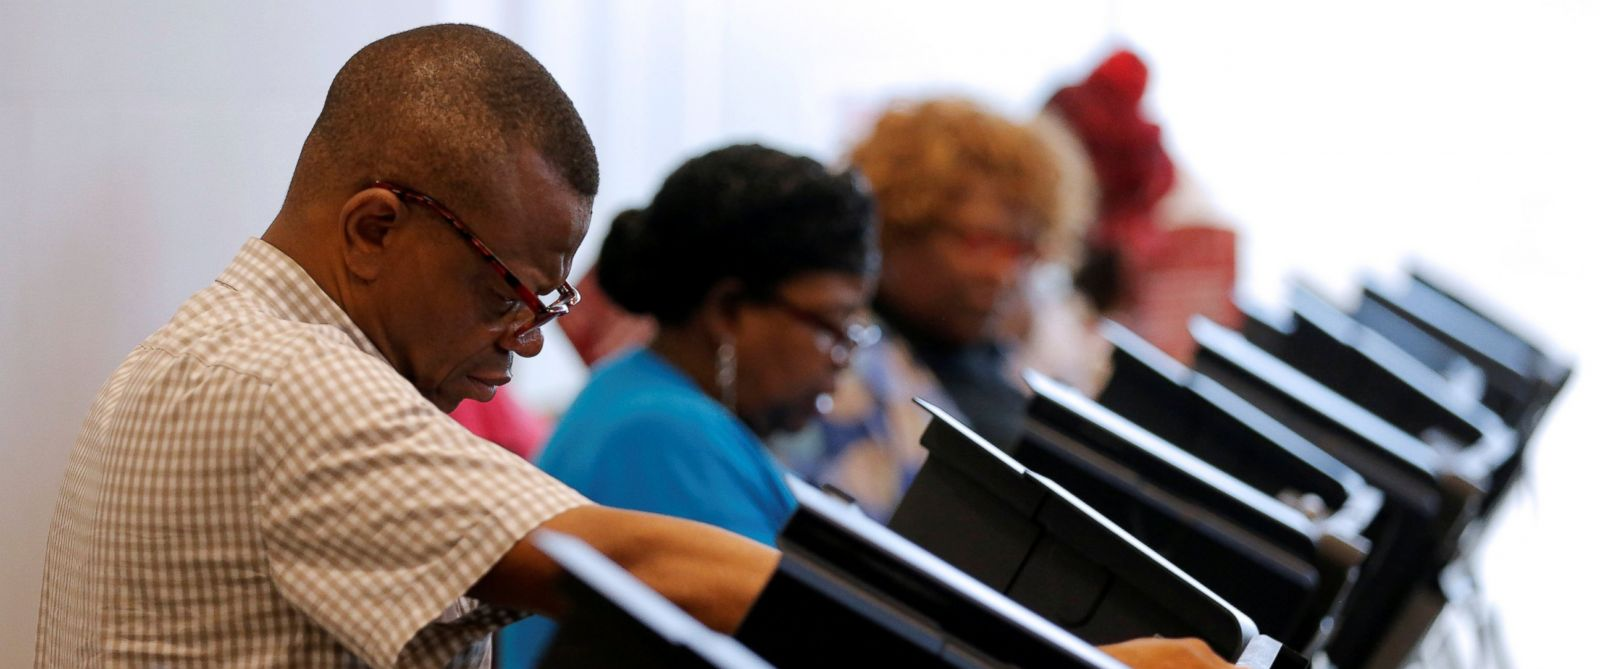 PHOTO: A voter casts his ballot during early voting at the Beatties Ford Library in Charlotte, North Carolina Oct. 20, 2016.